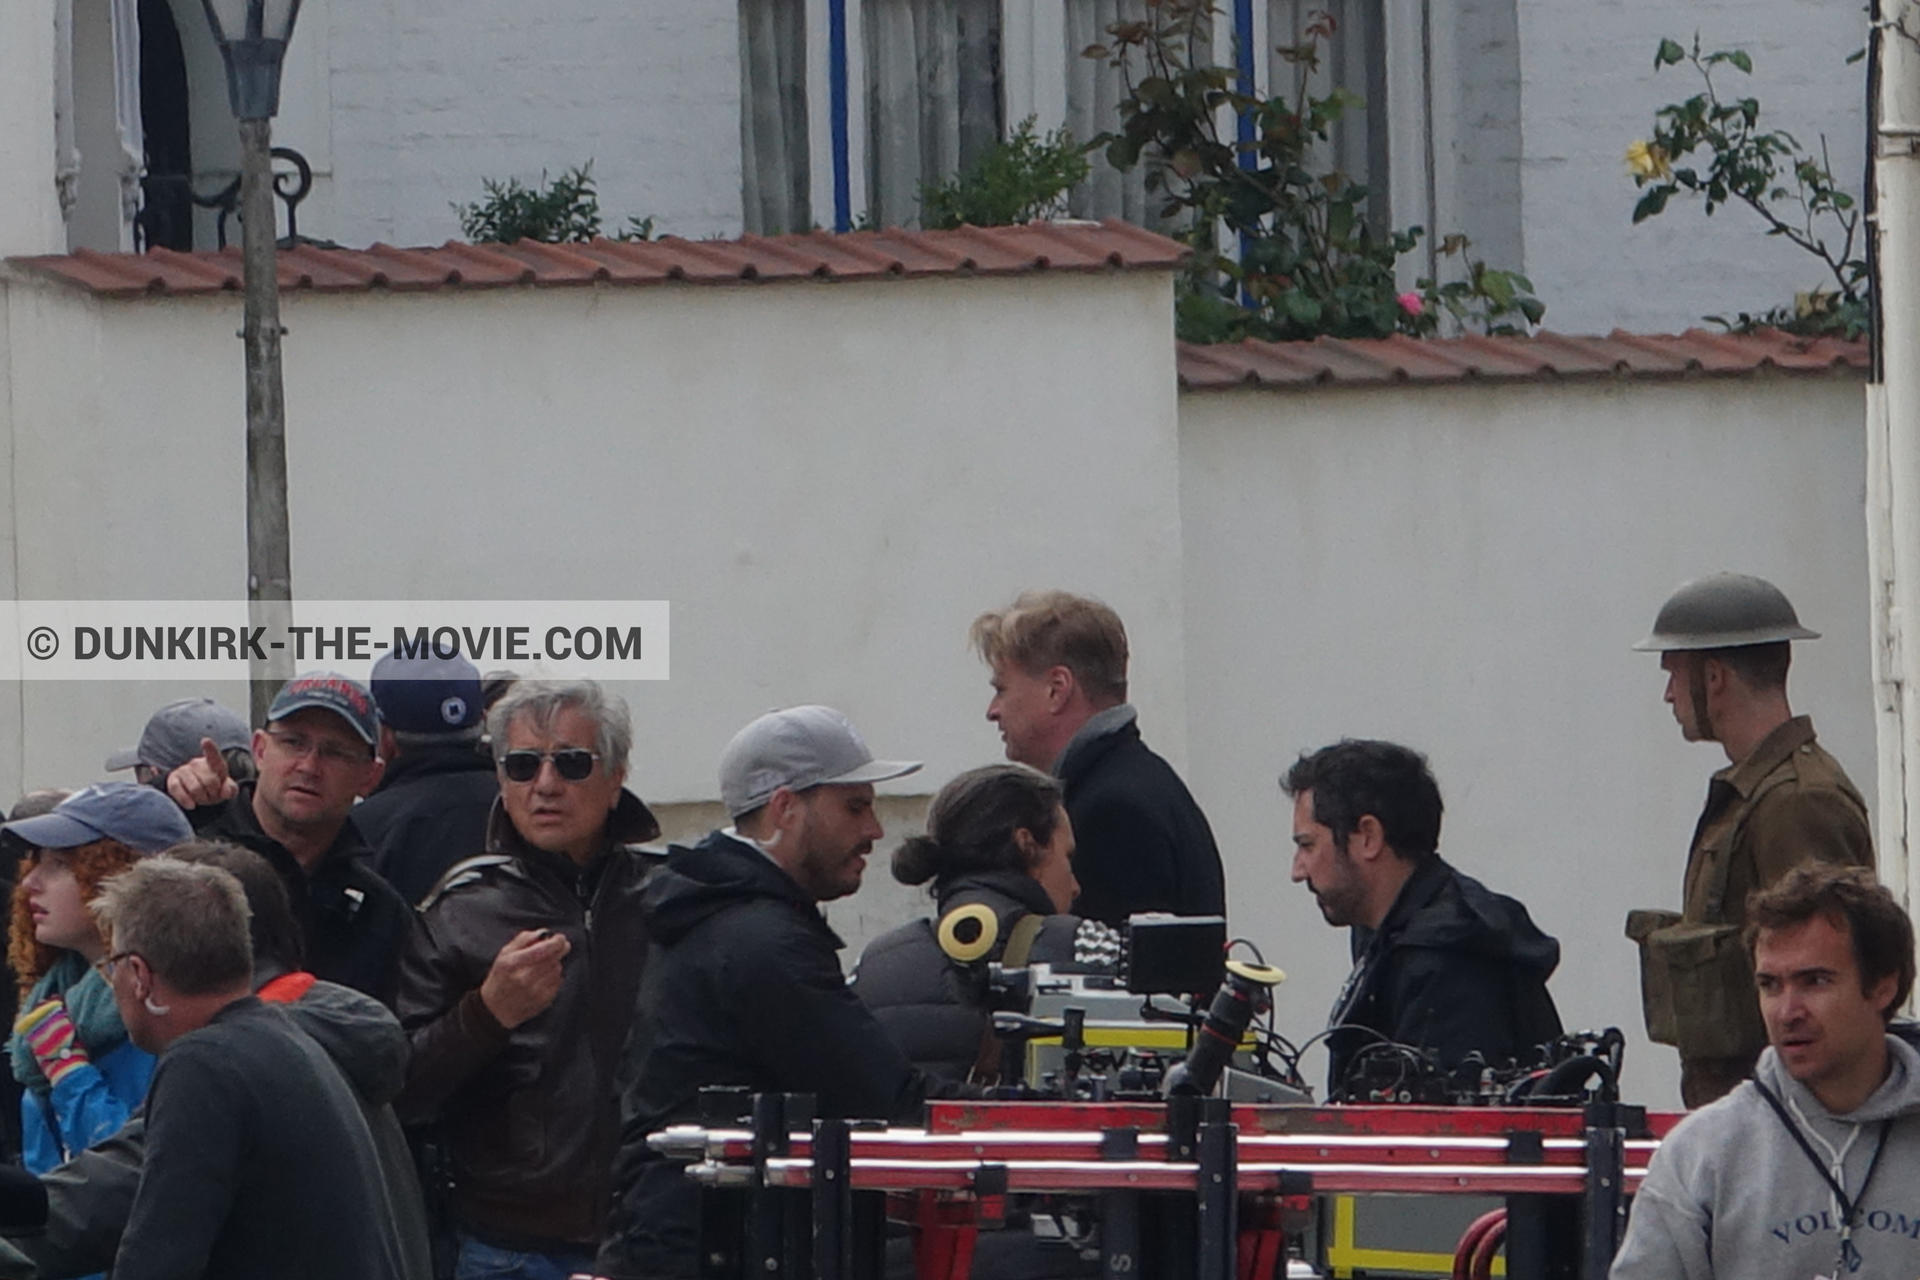 Picture with Christopher Nolan, Belle Rade street, technical team, Nilo Otero,  from behind the scene of the Dunkirk movie by Nolan